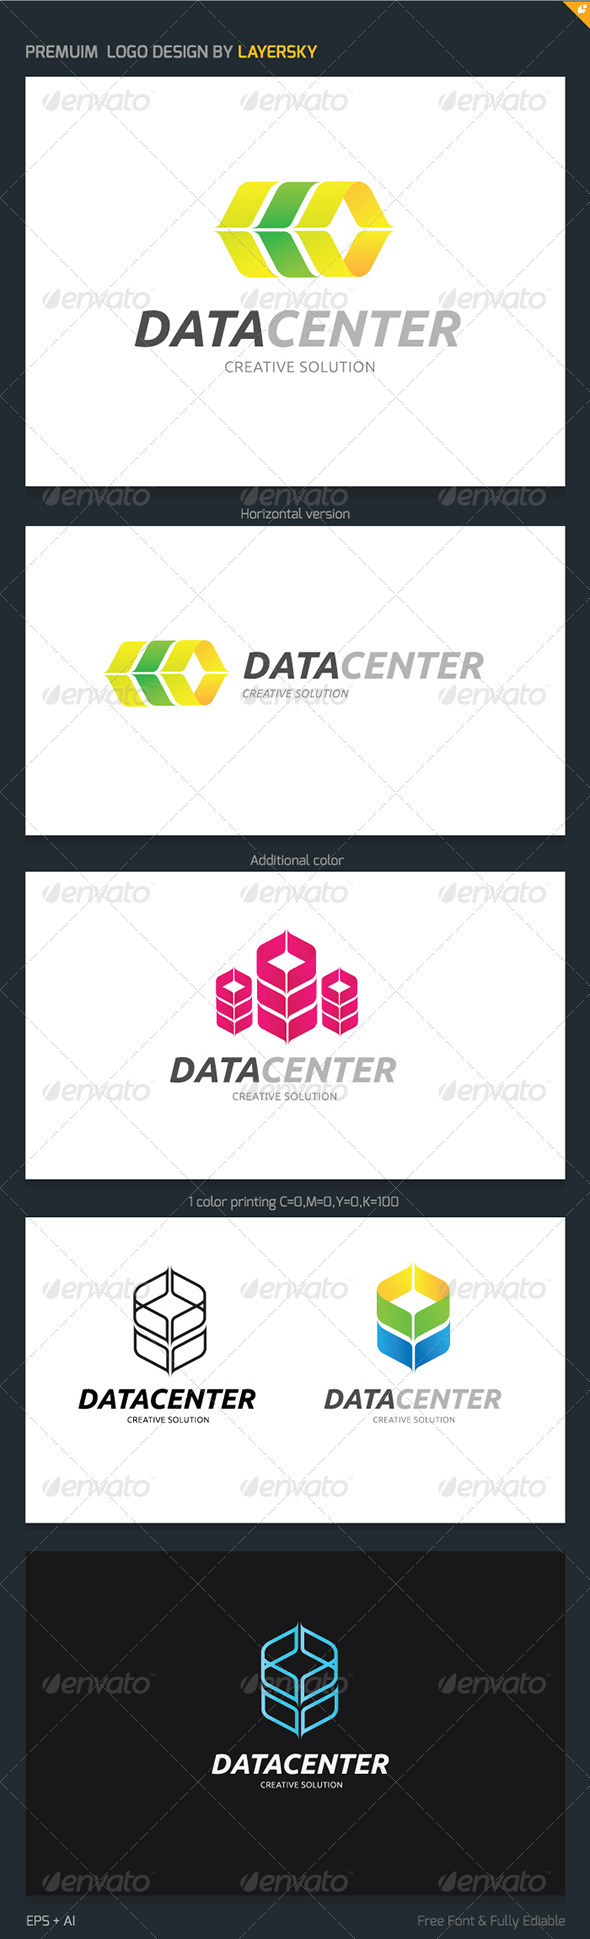 GraphicRiver Data Center Logo 4166203